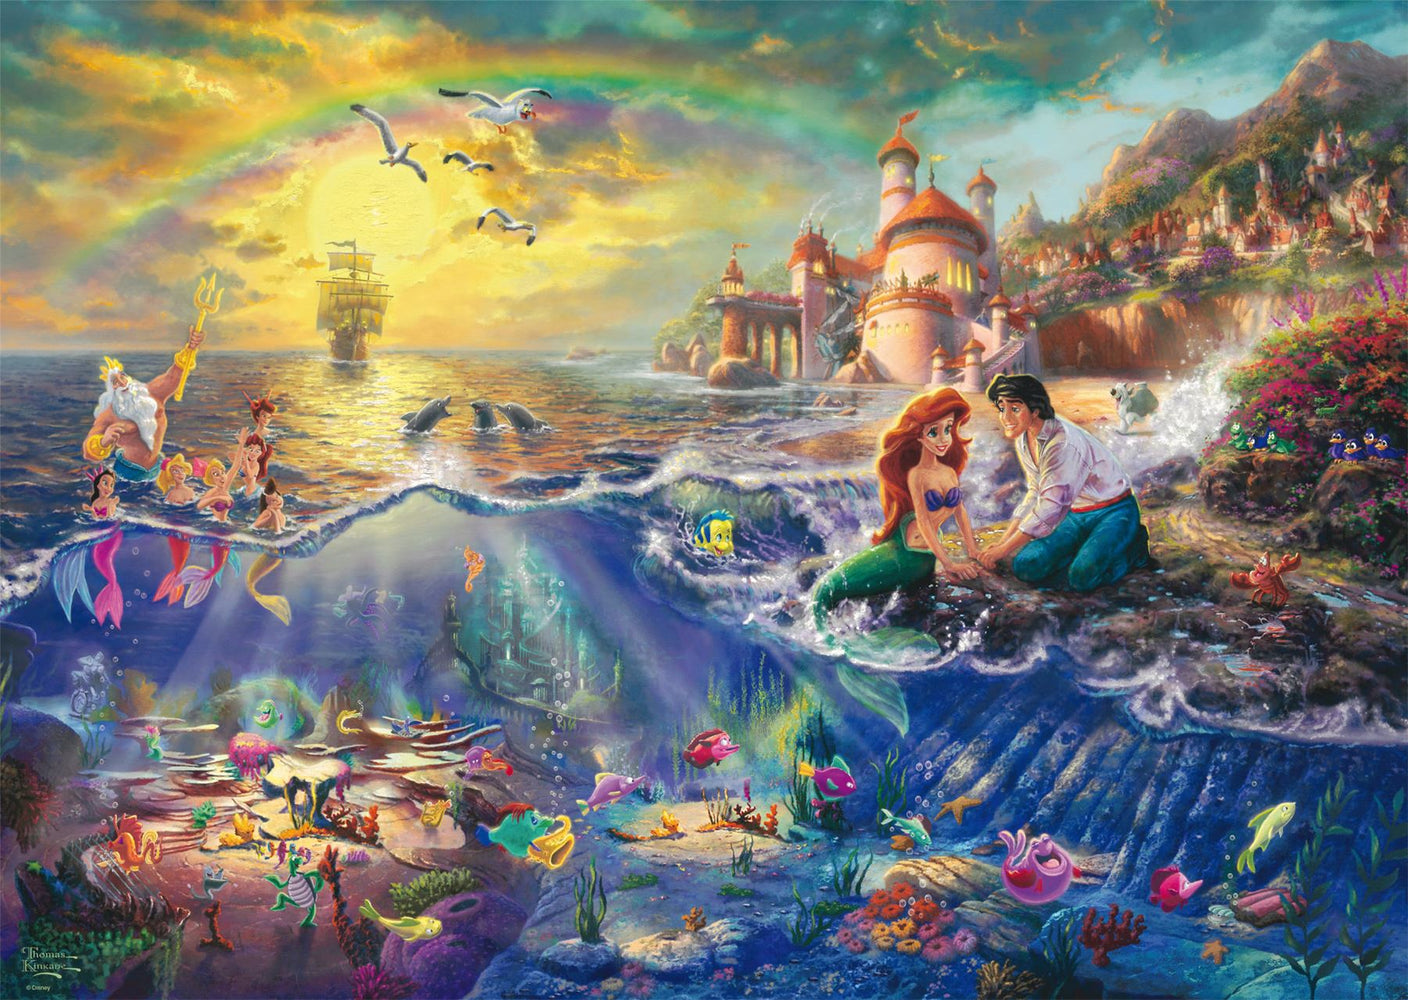 Thomas Kinkade - Disney The Little Mermaid 1000 Pieces - All Jigsaw Puzzles